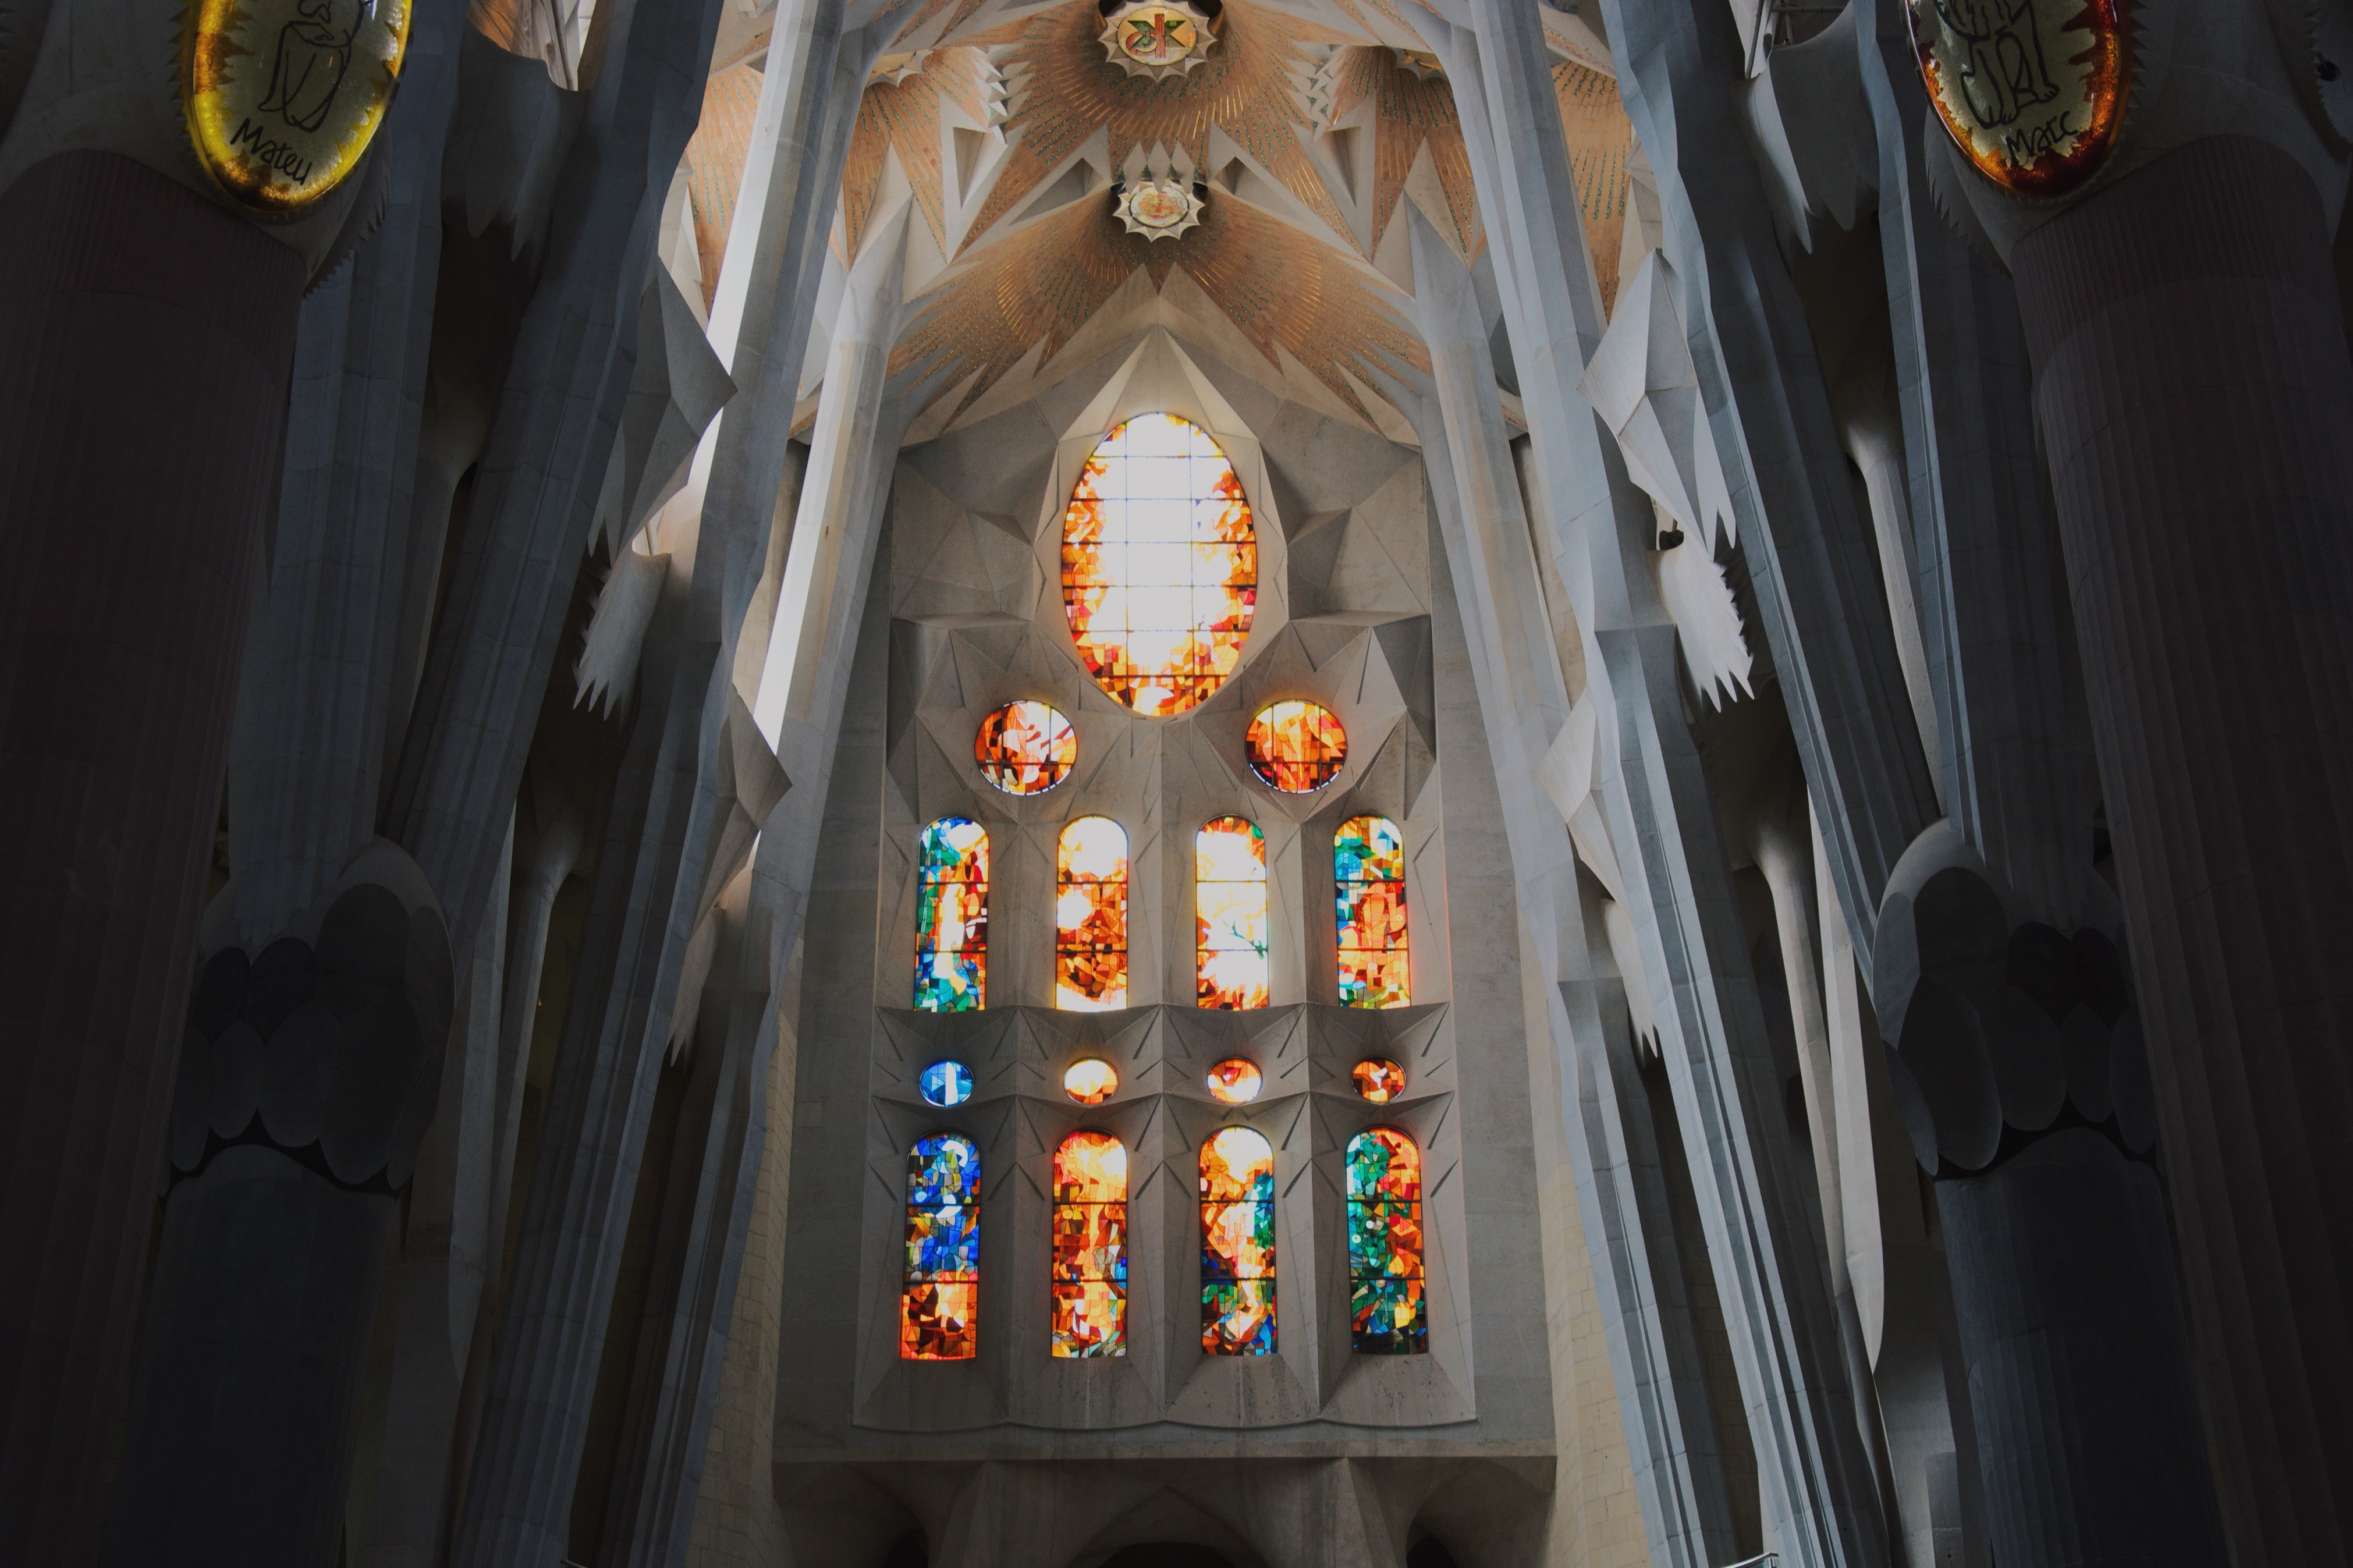 cathedral with stained glass decor